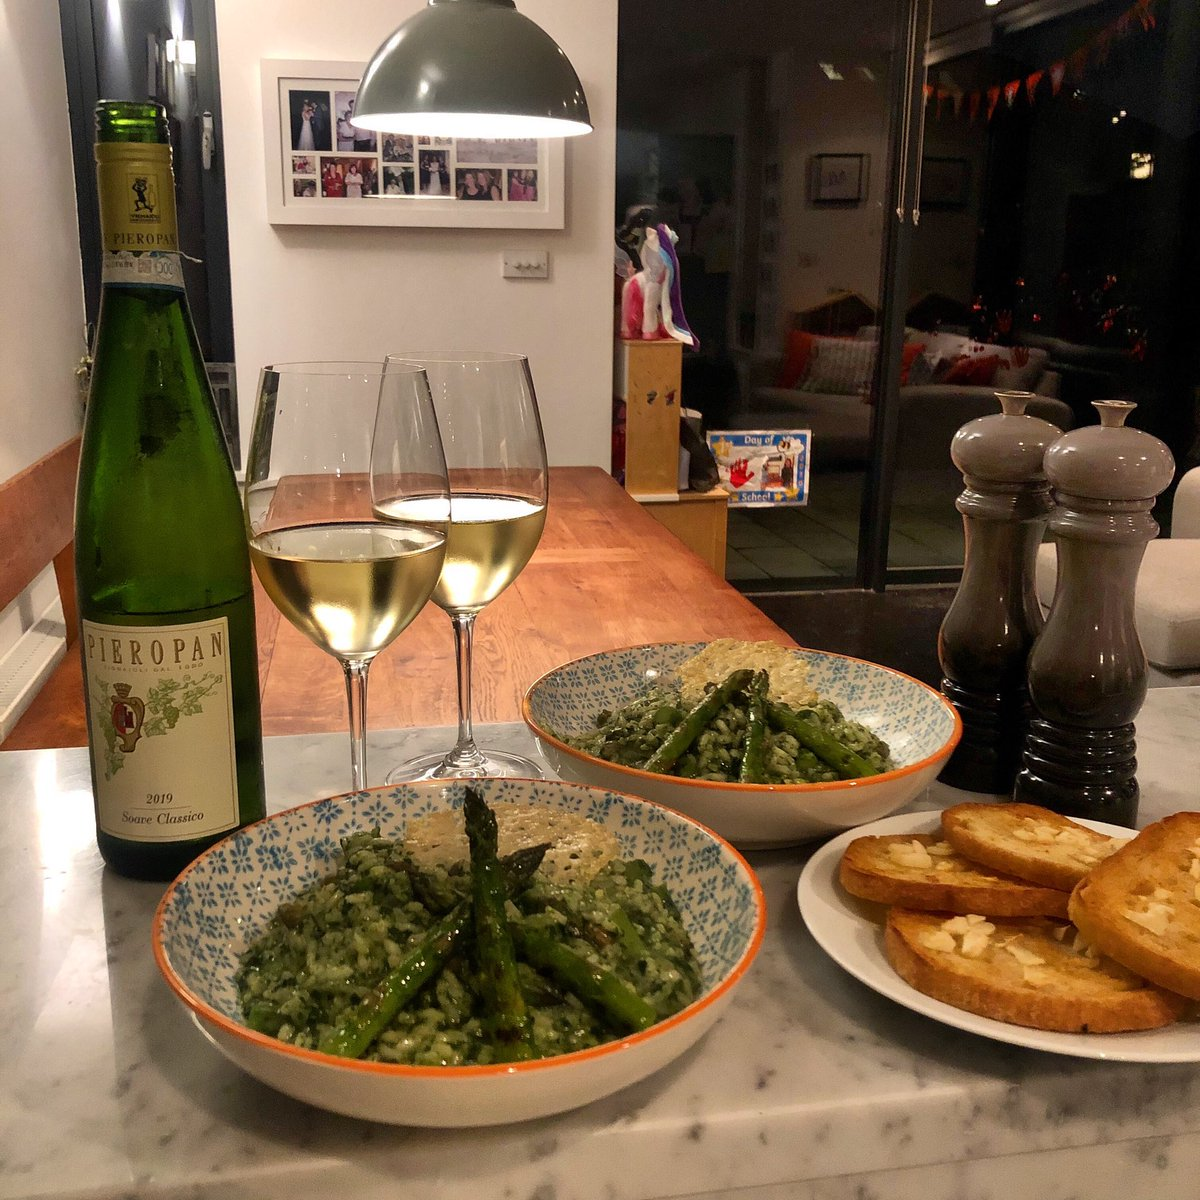 Keeping it classically simple tonight with a risotto verde paired with the peerless Pieropan Soave.  . . . #wine #foodandwine #clontarf https://t.co/5xaJj06MVw